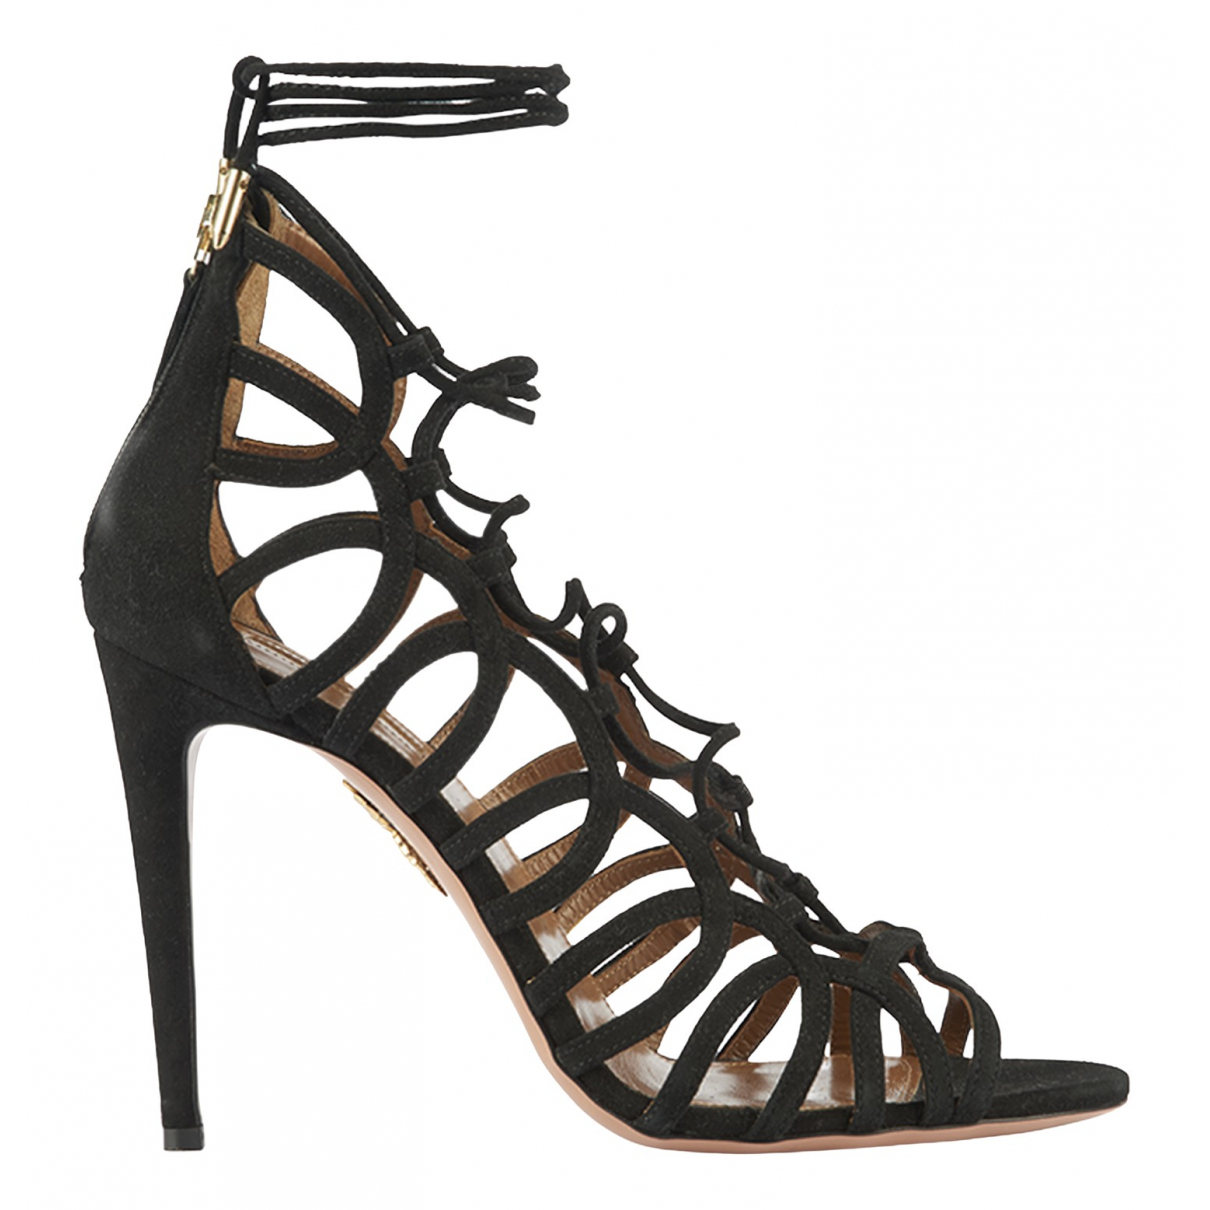 Aquazzura N Black Suede Sandals for Women 7 UK